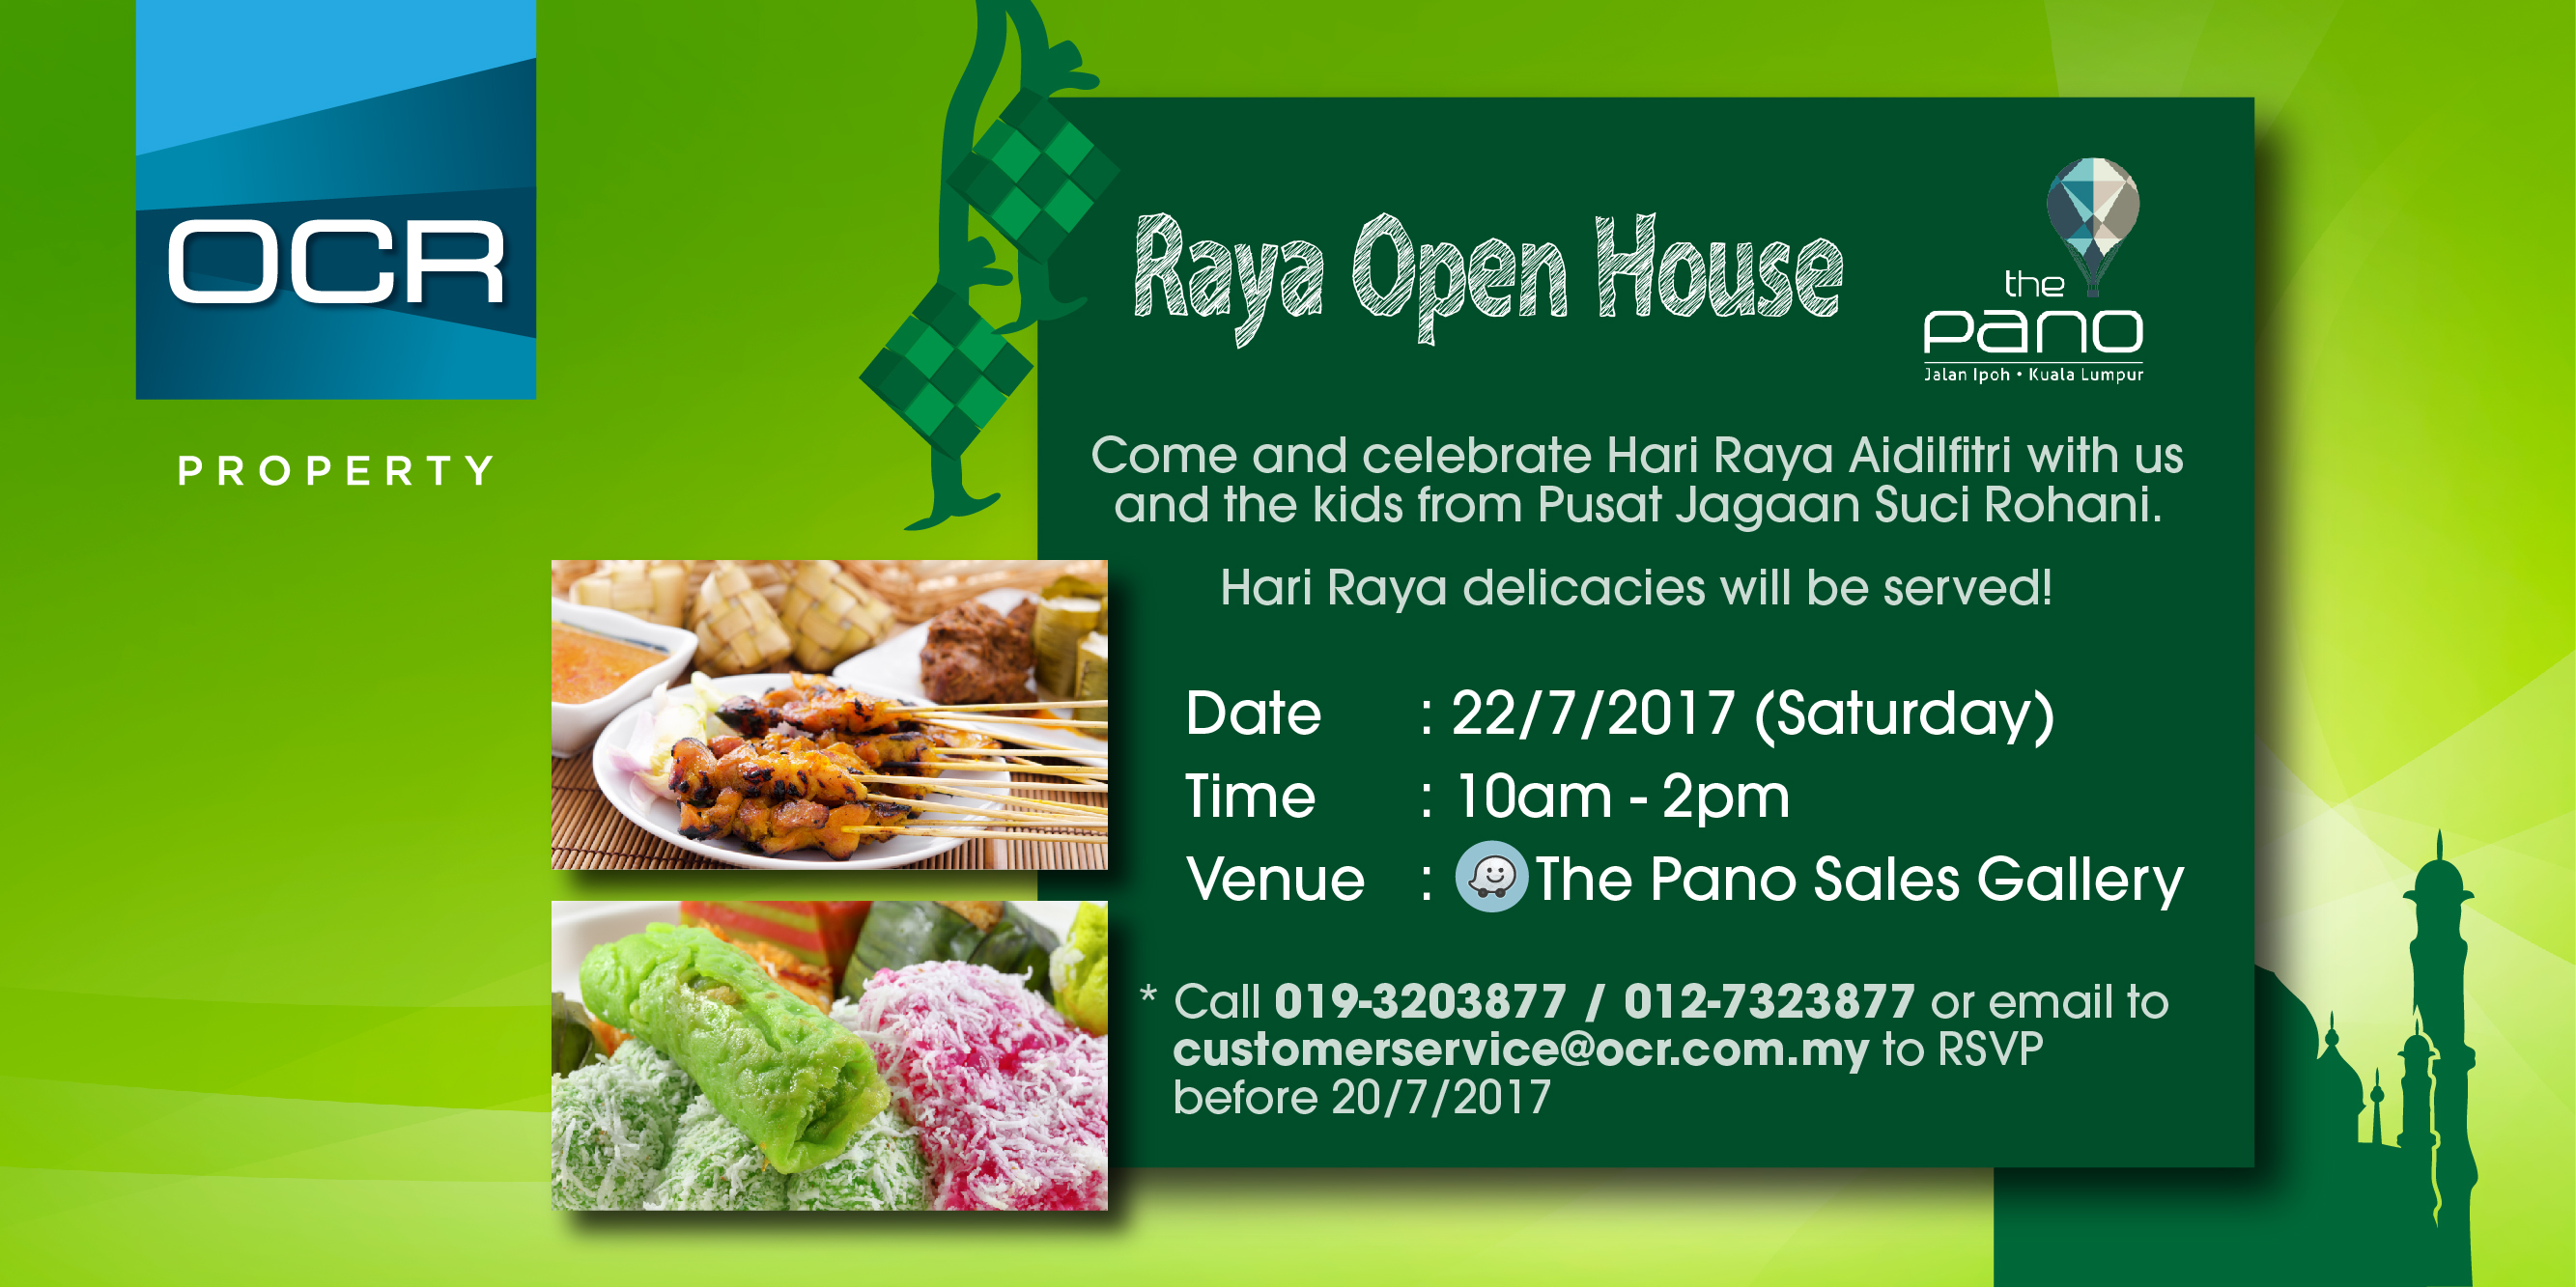 Raya Open House at The Pano